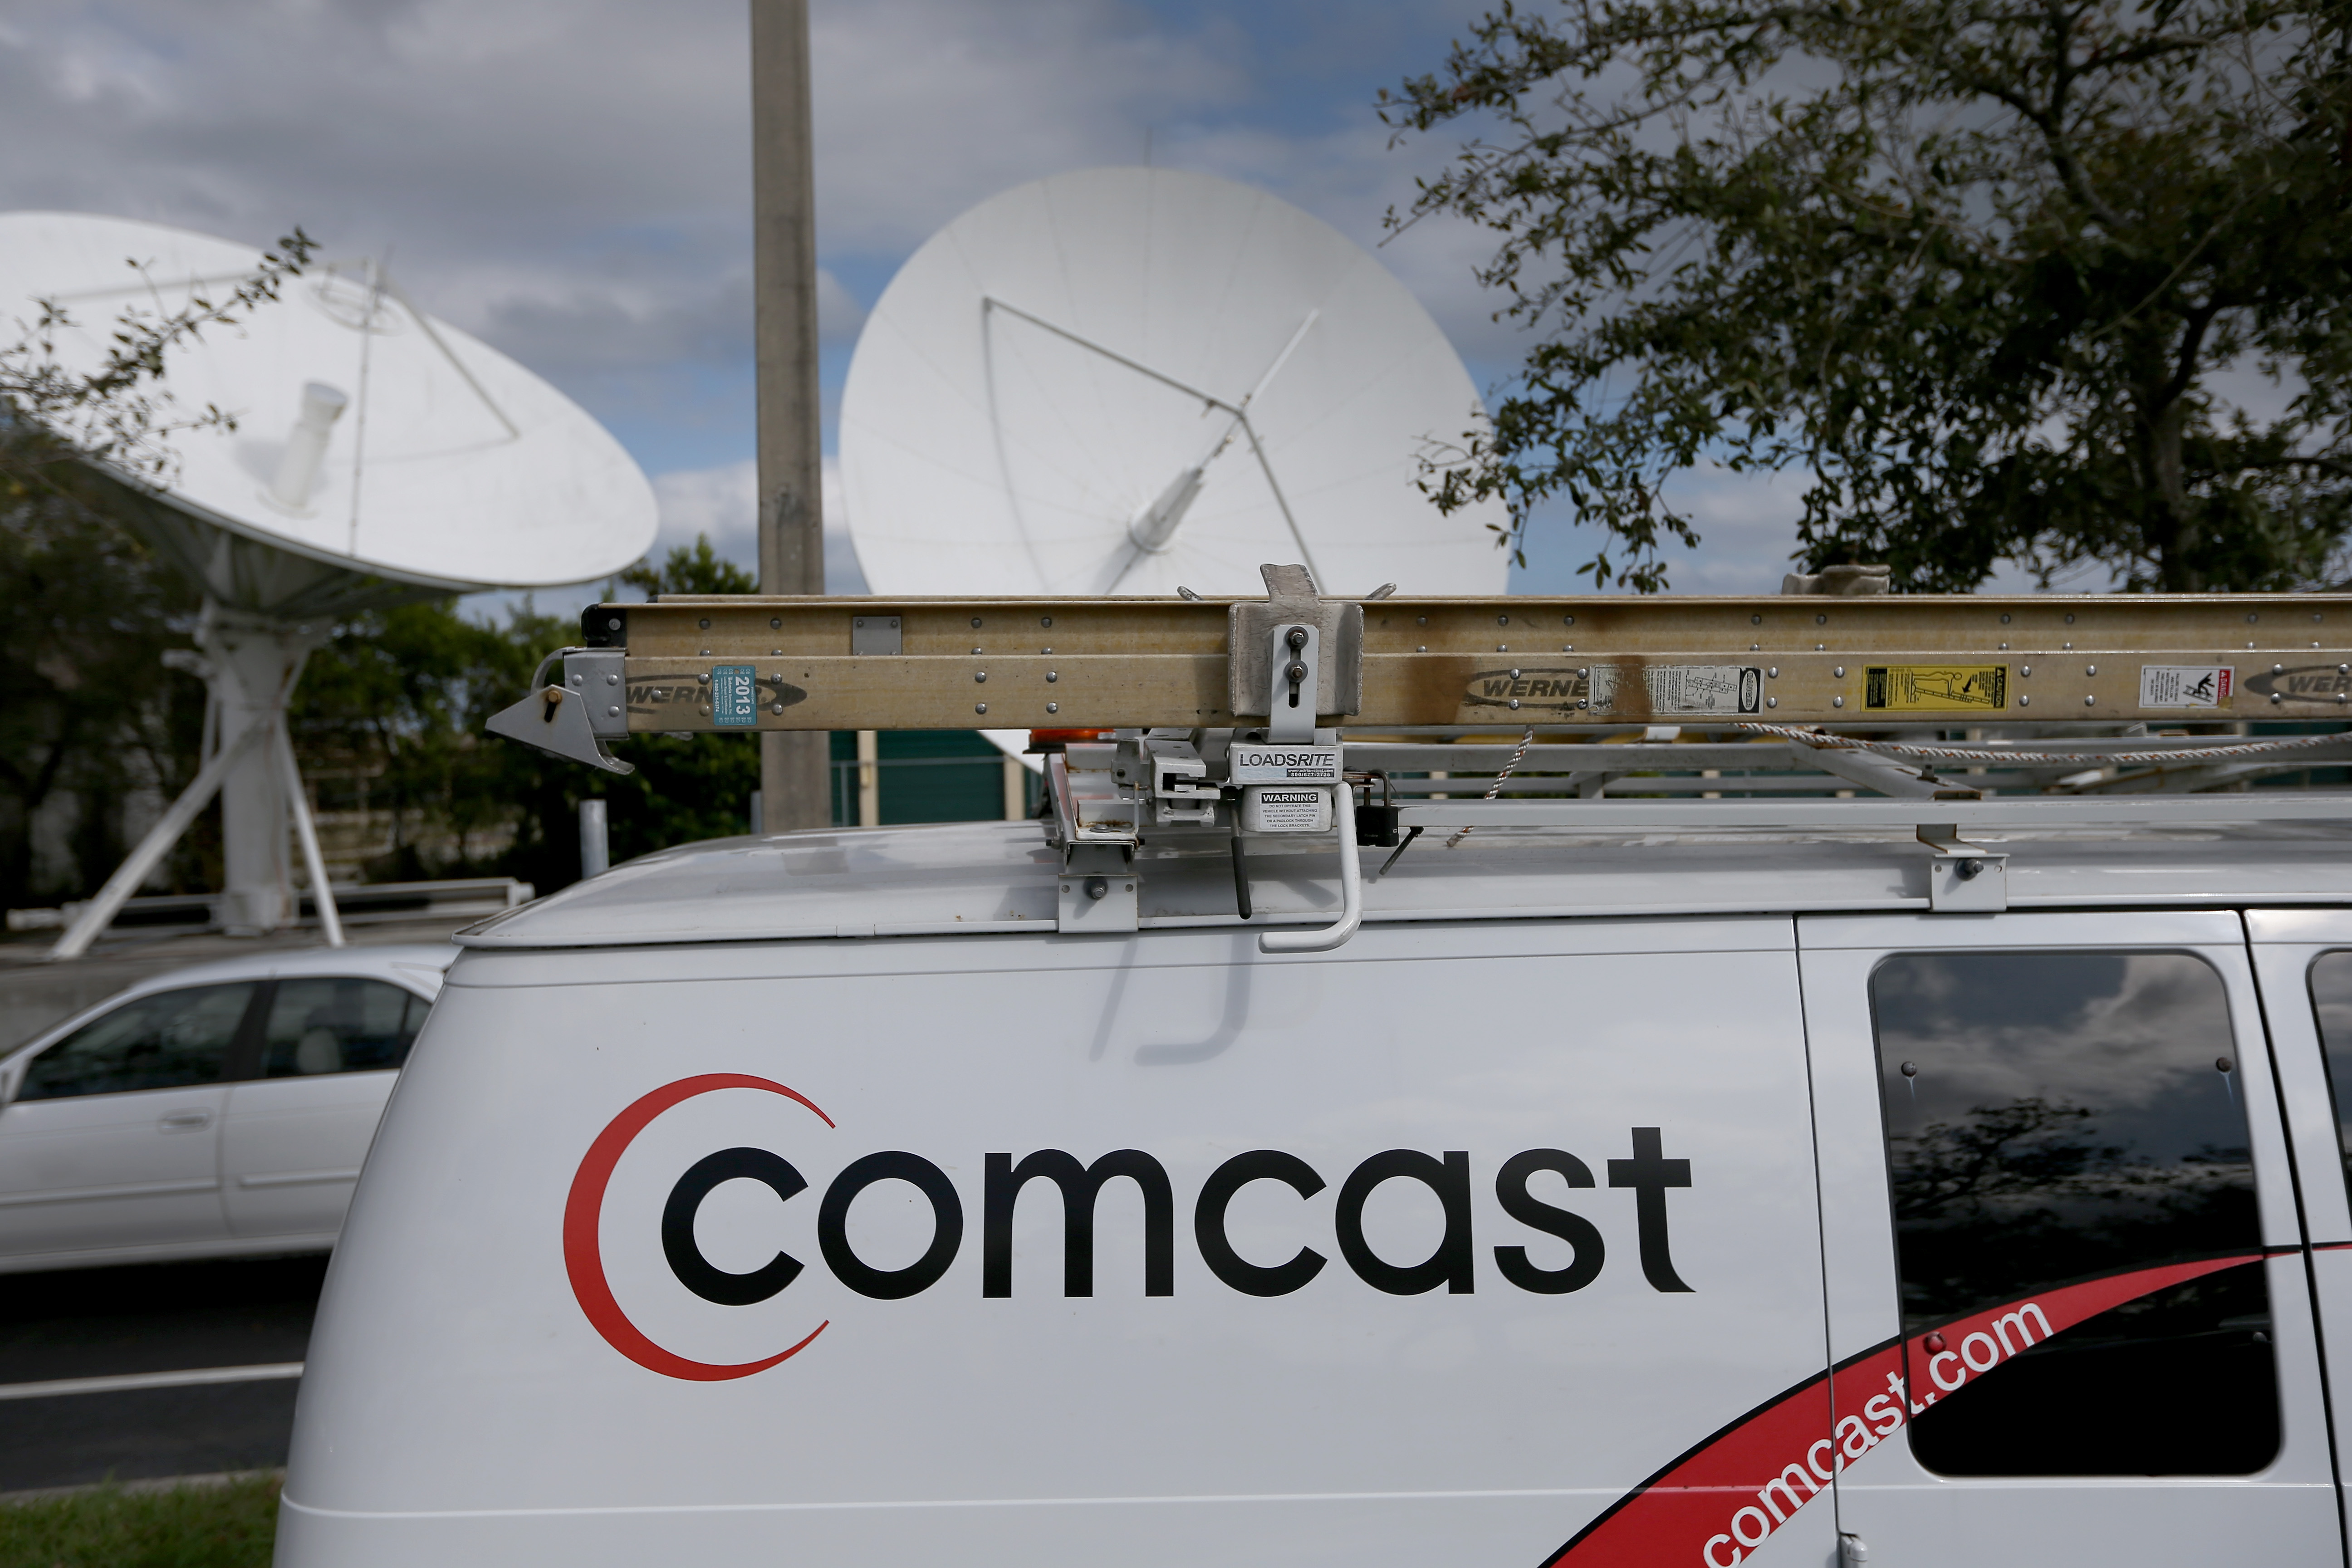 A Comcast truck is seen parked at one of their centers on February 13, 2014 in Pompano Beach, Florida.